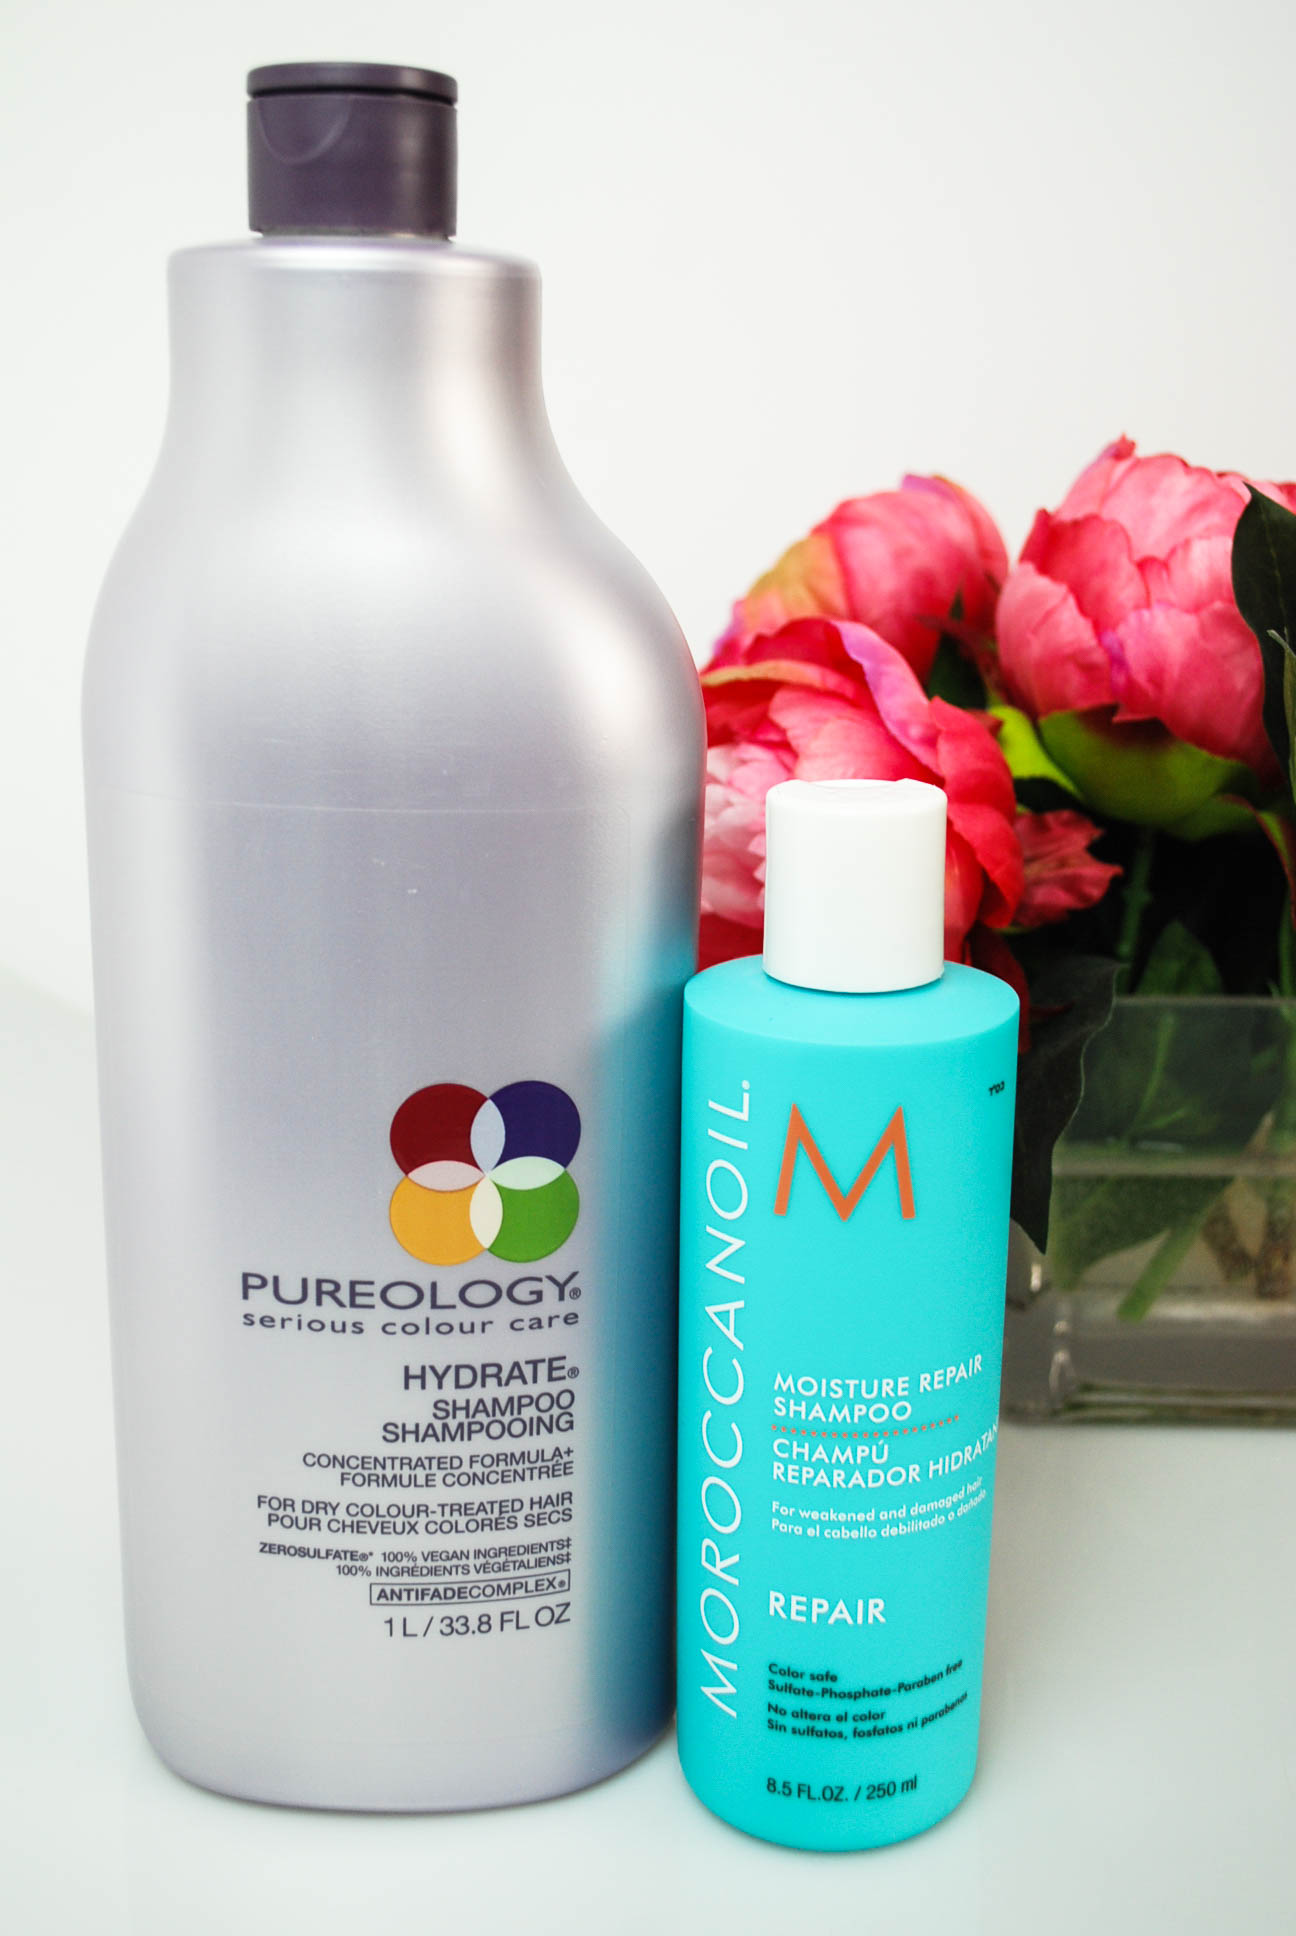 Product Review: Moroccan Oil vs. Pureology